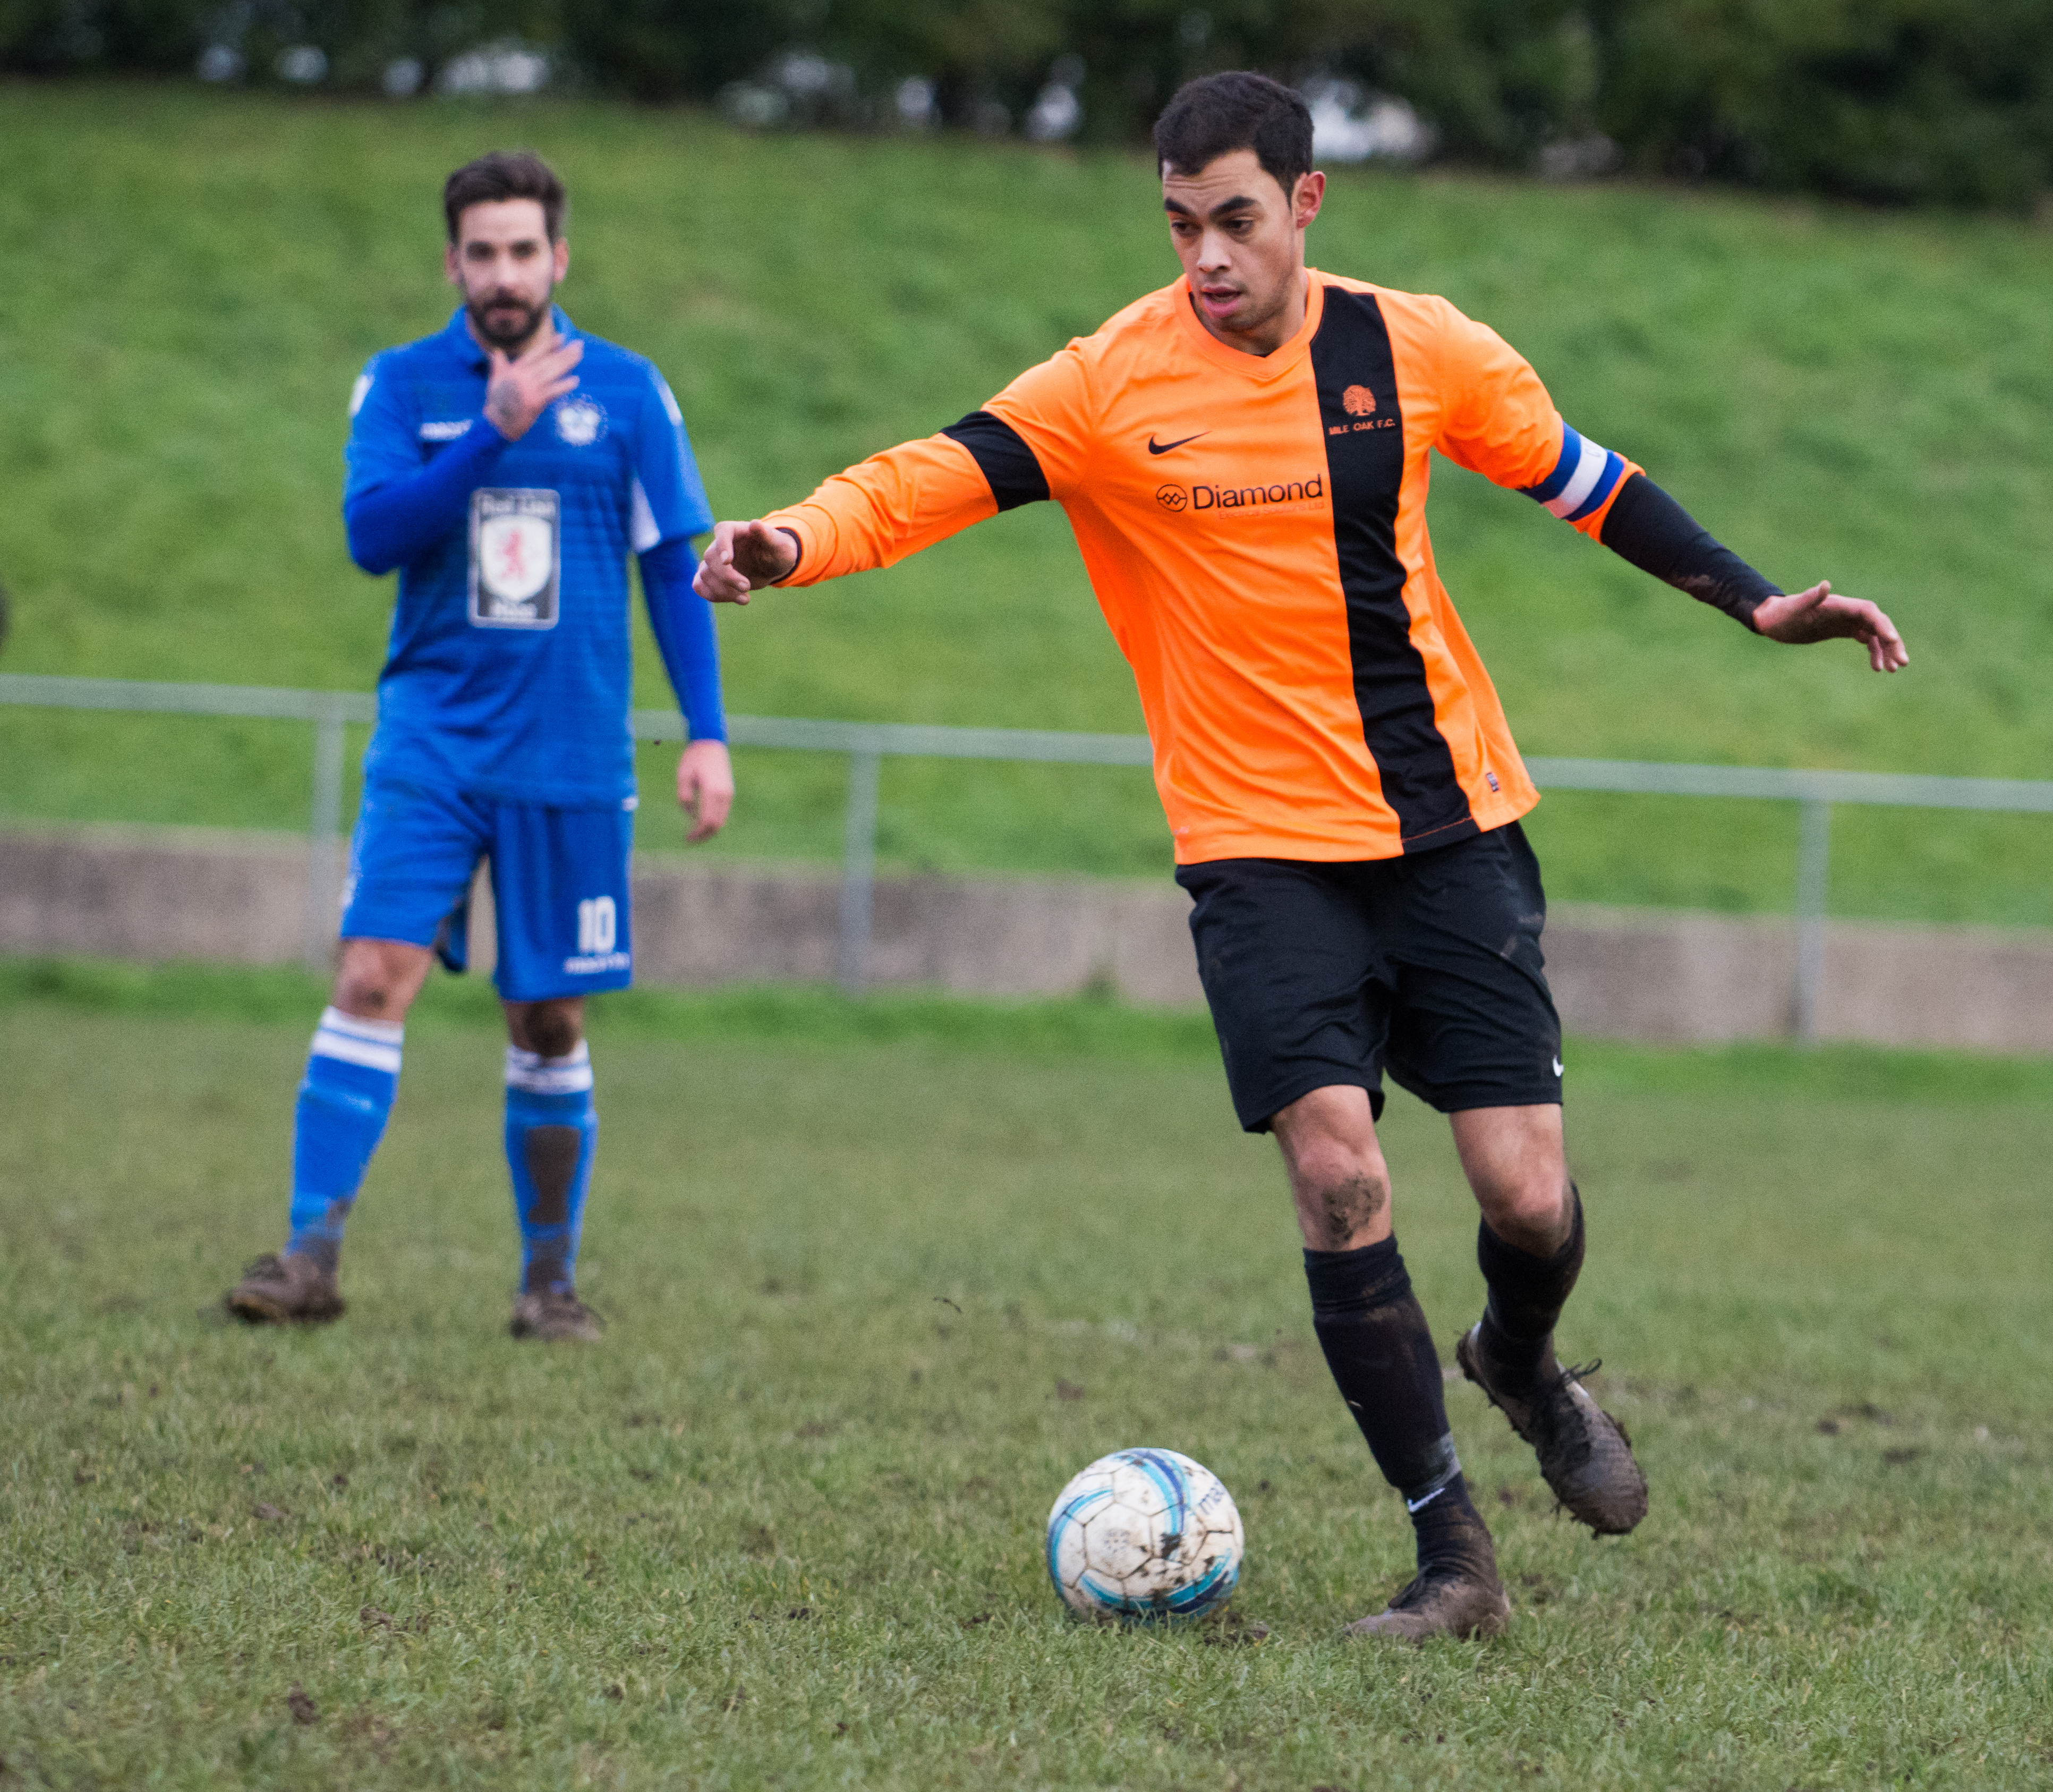 Mile Oak Res vs Sidley United 09.12.17 32